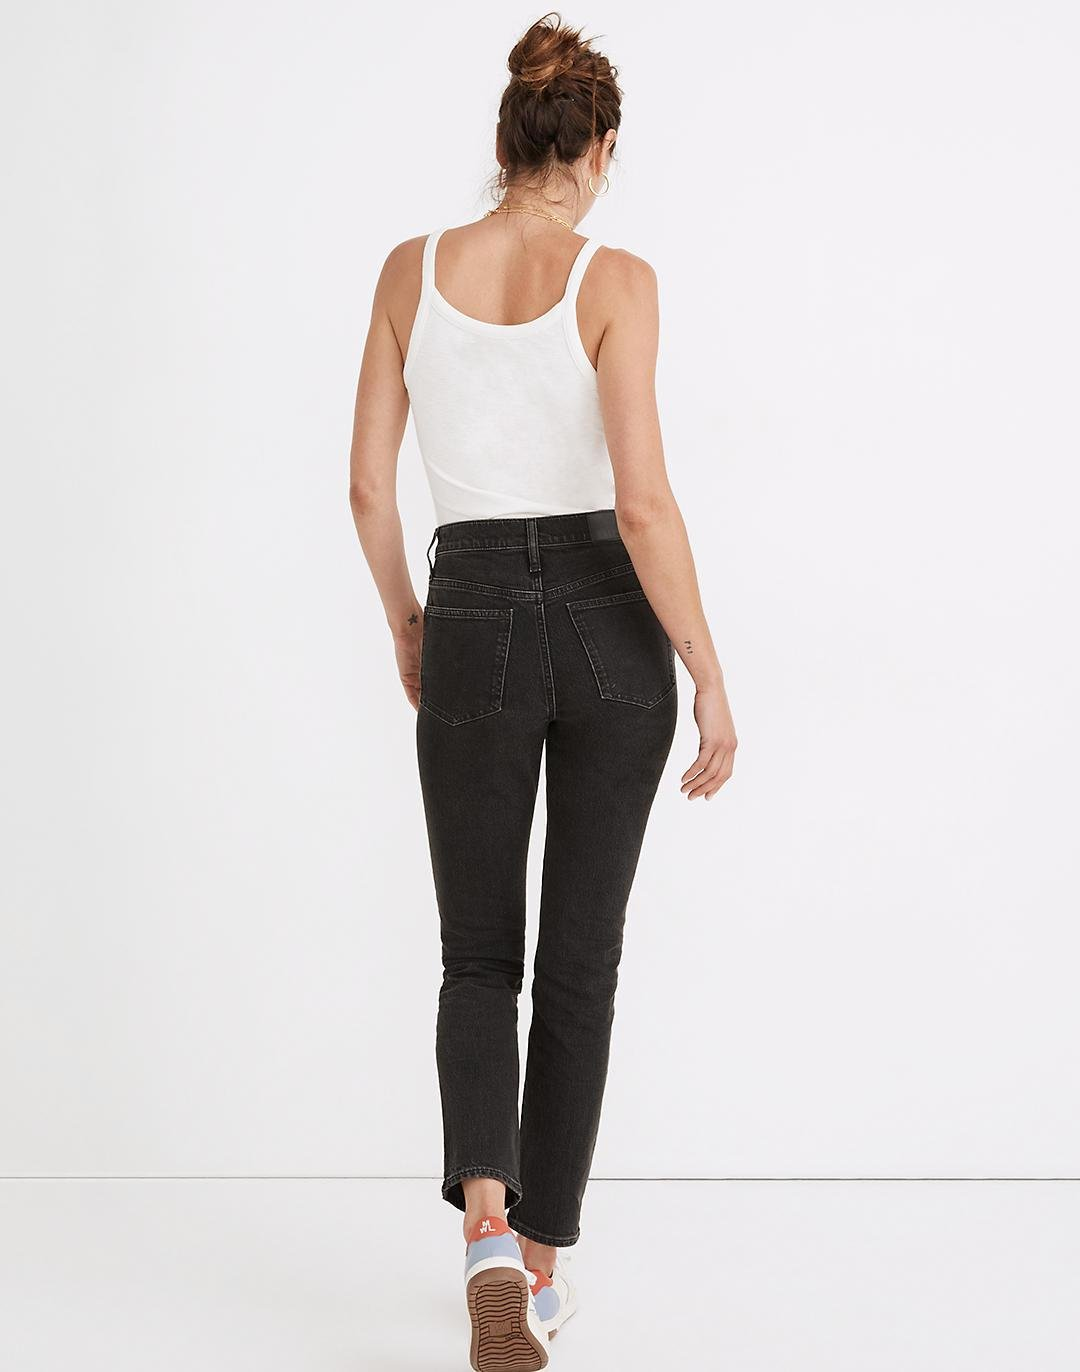 The Petite Perfect Vintage Jean in Lunar Wash 2